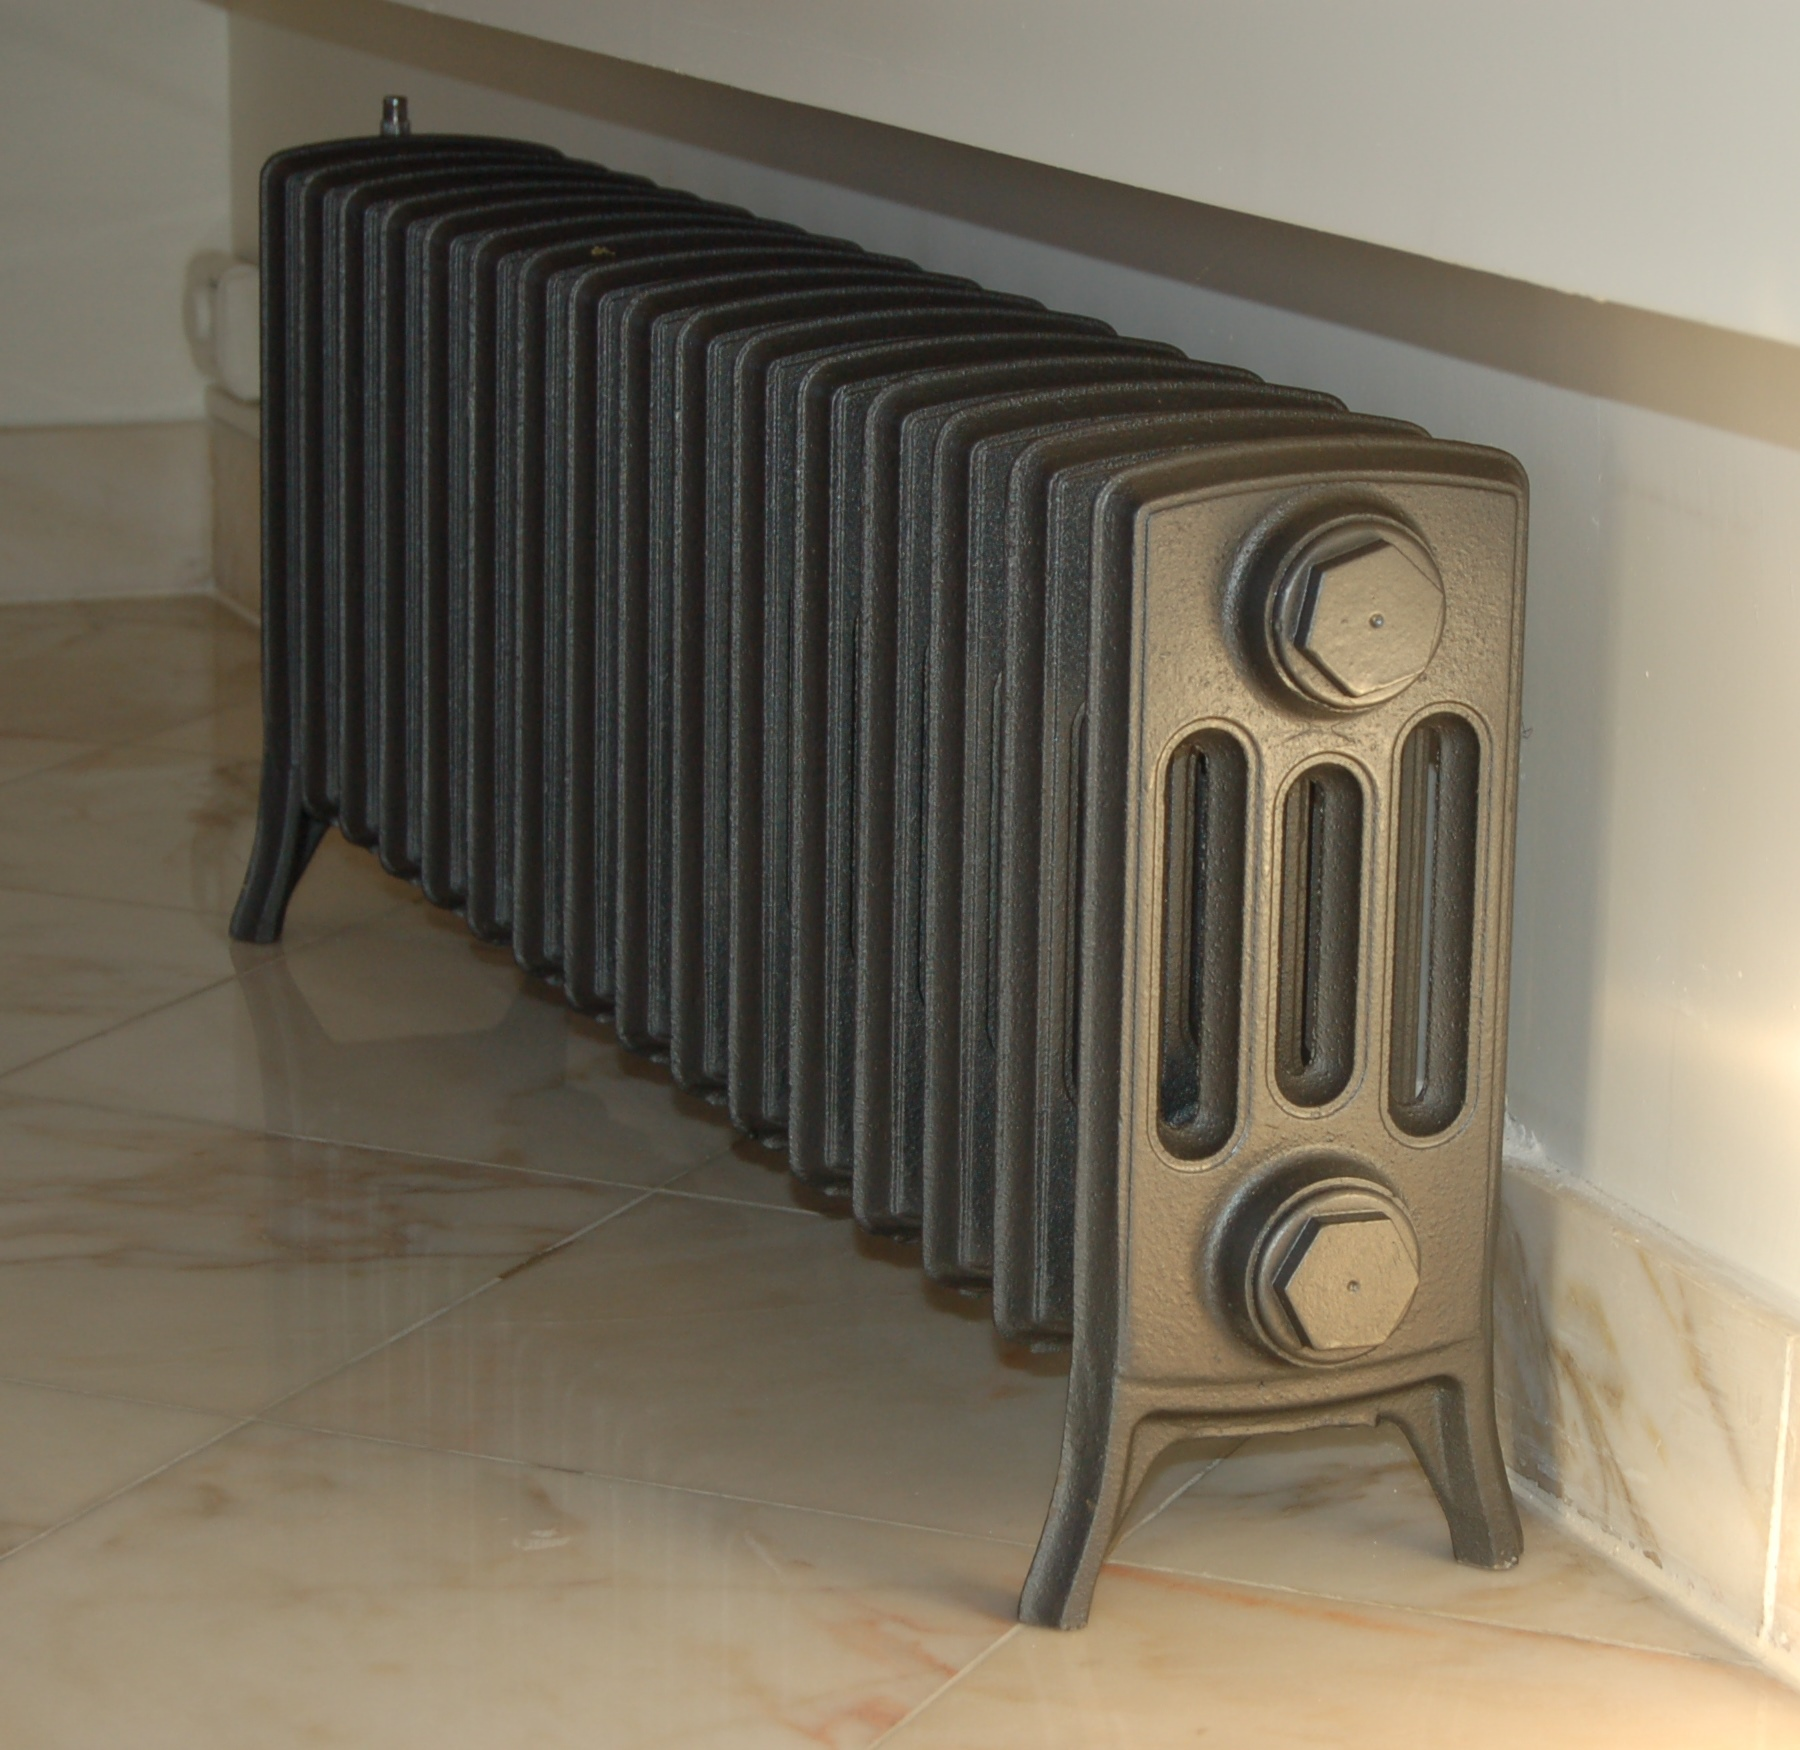 visuel radiateur fonte electrique. Black Bedroom Furniture Sets. Home Design Ideas